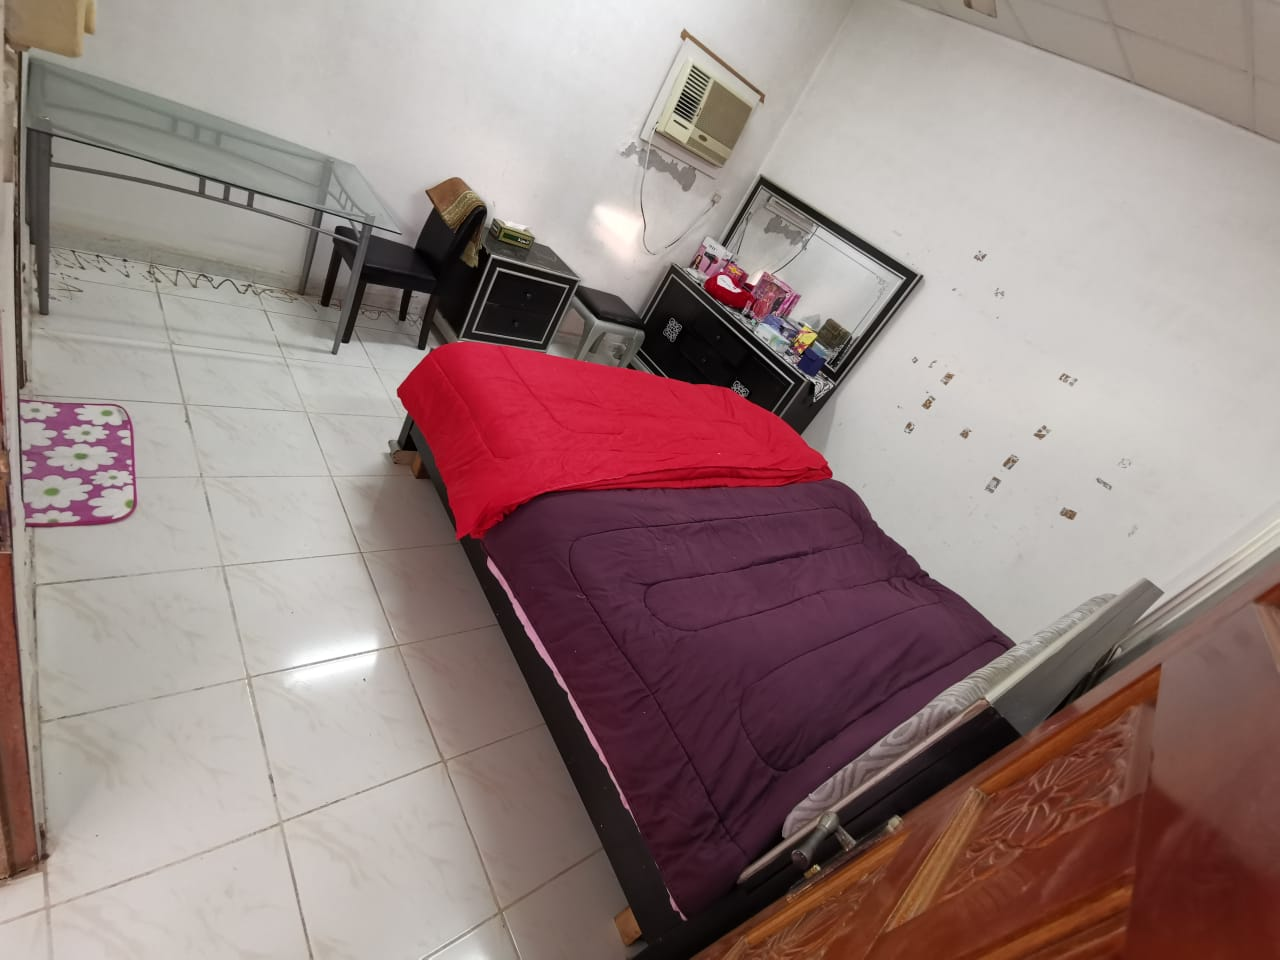 Fully Furnished Room in a Villa for Rent in Julan for Family or Working Ladies